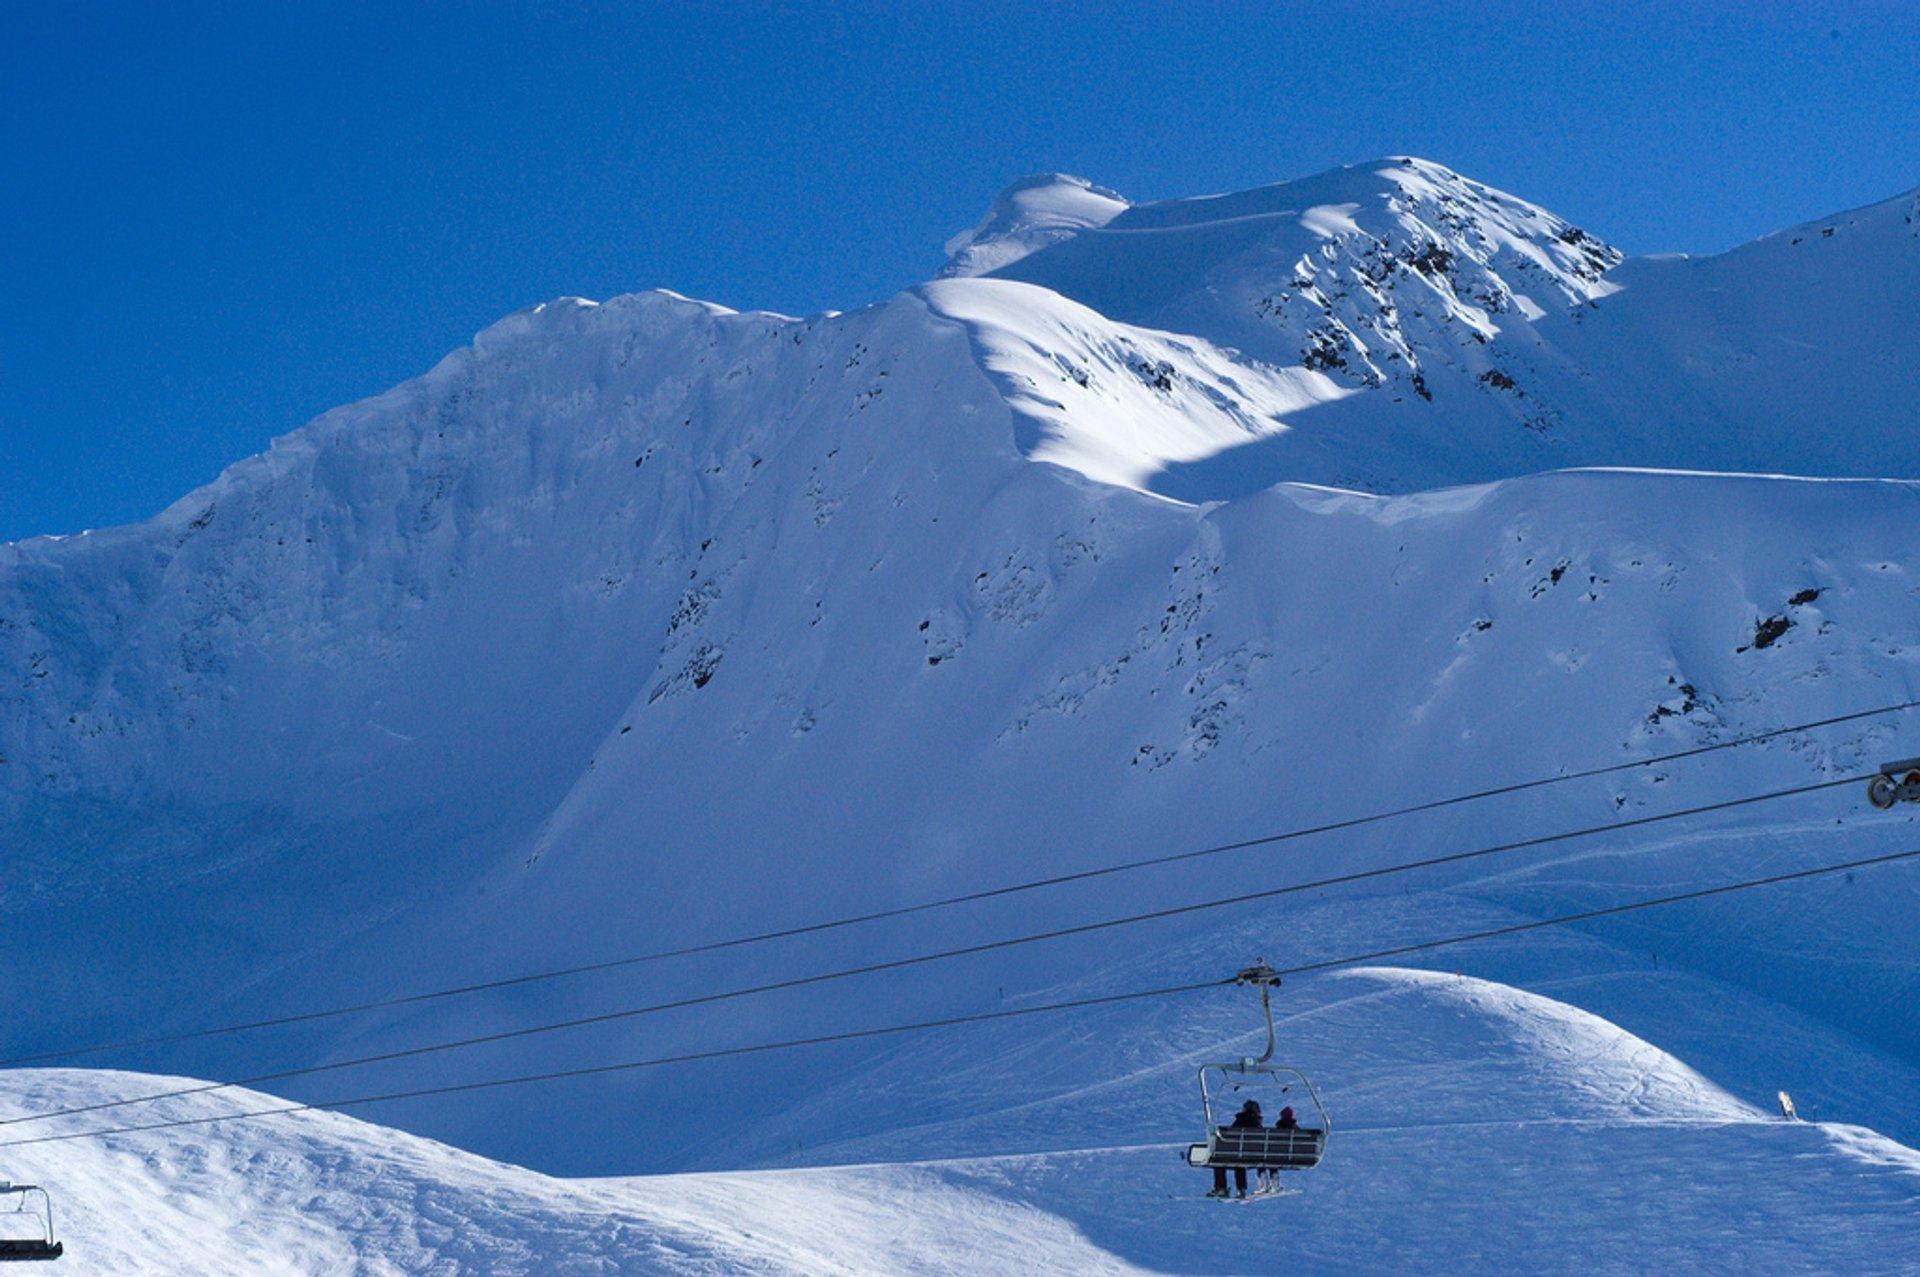 Alyeska Ski Resort 2020